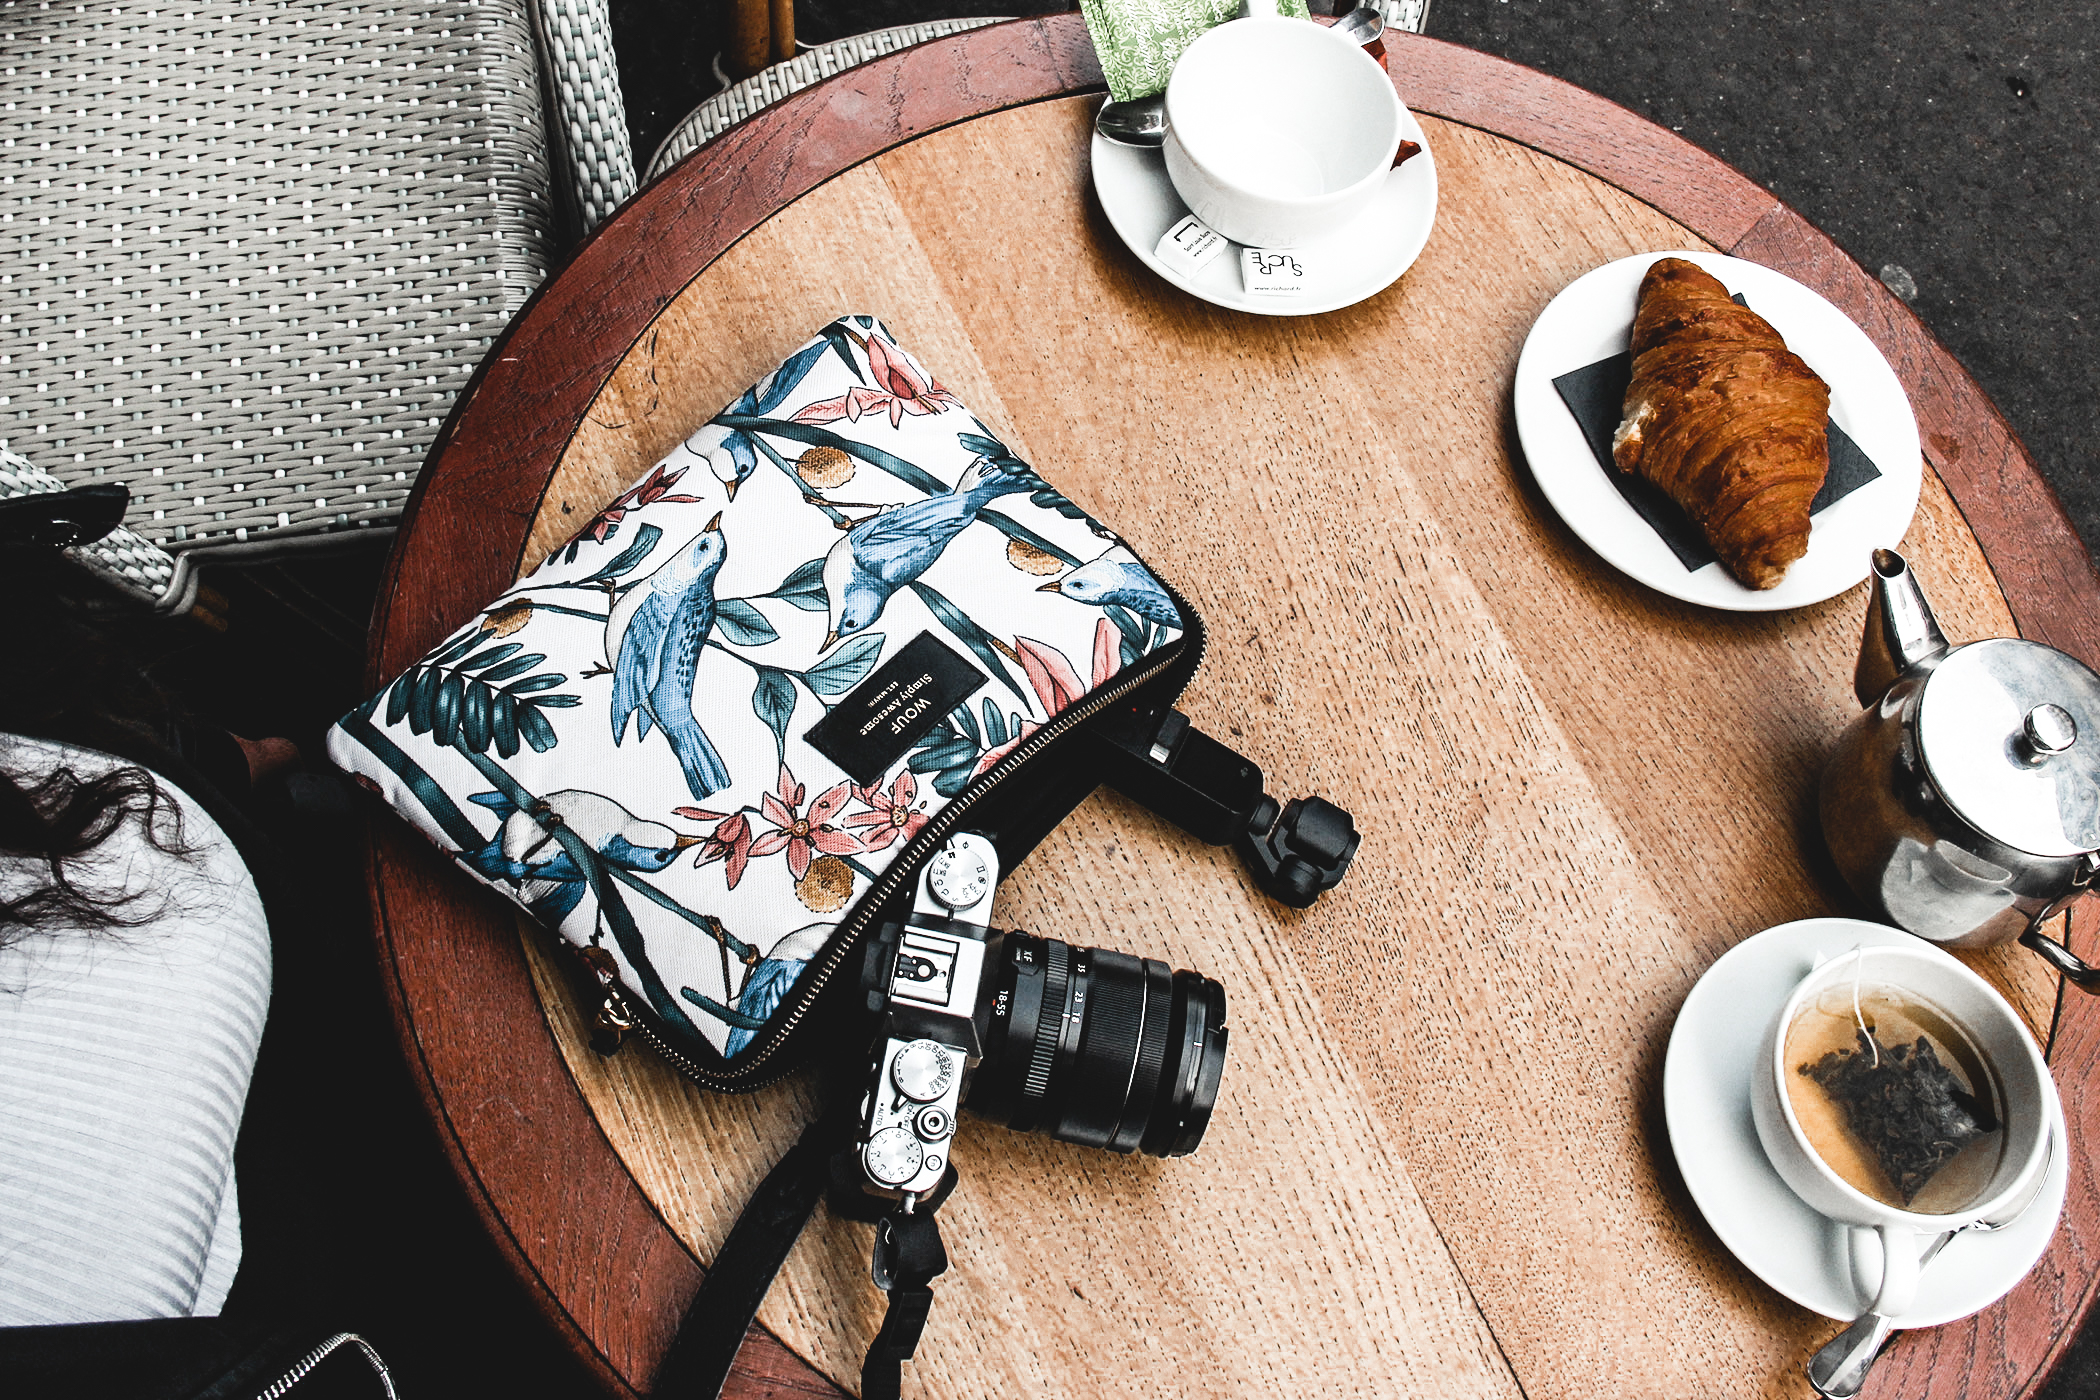 Travel girl in Paris, using Fujifilm TX 30 & DJI Osmo pocket camera to make video and wonderful photography. Setting at a Parisian Cafe. Pochette WOUF.